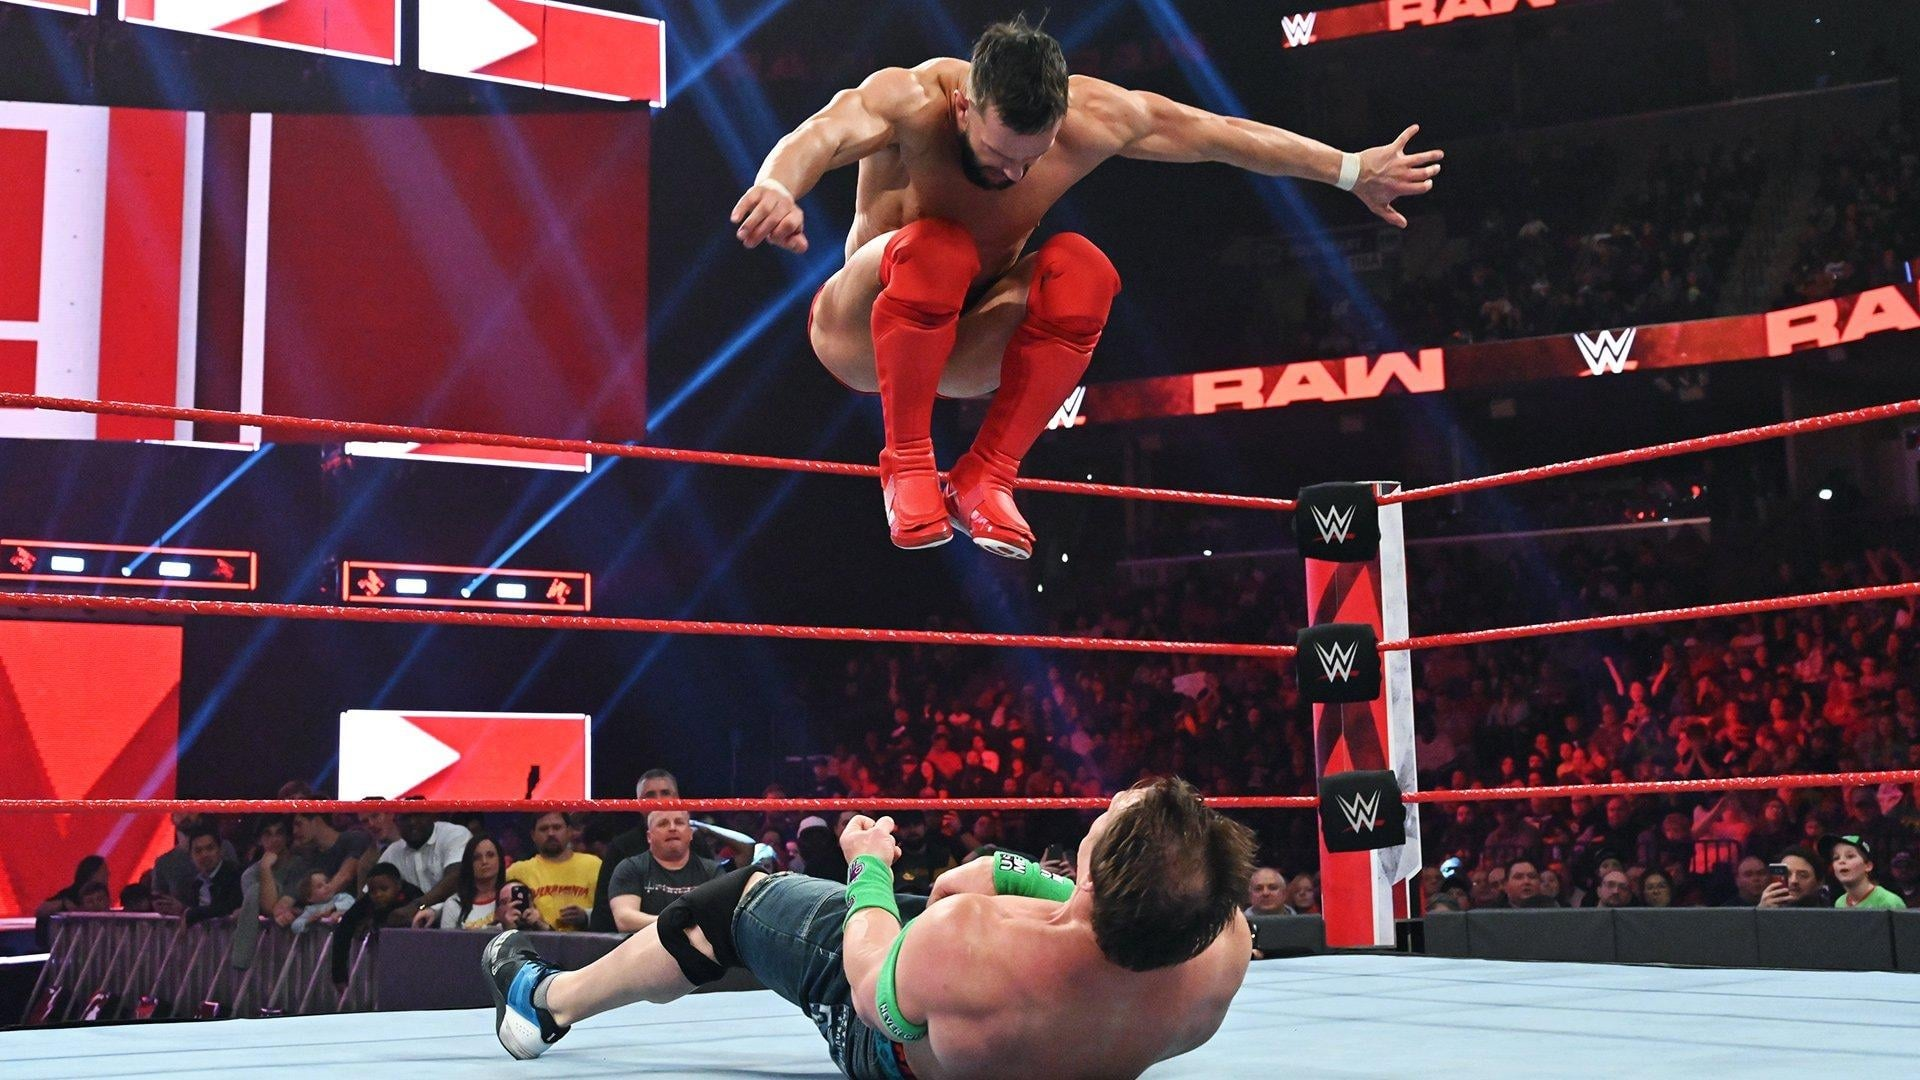 WWE Raw Season 27 :Episode 2  January 14, 2019 (Memphis, TN)